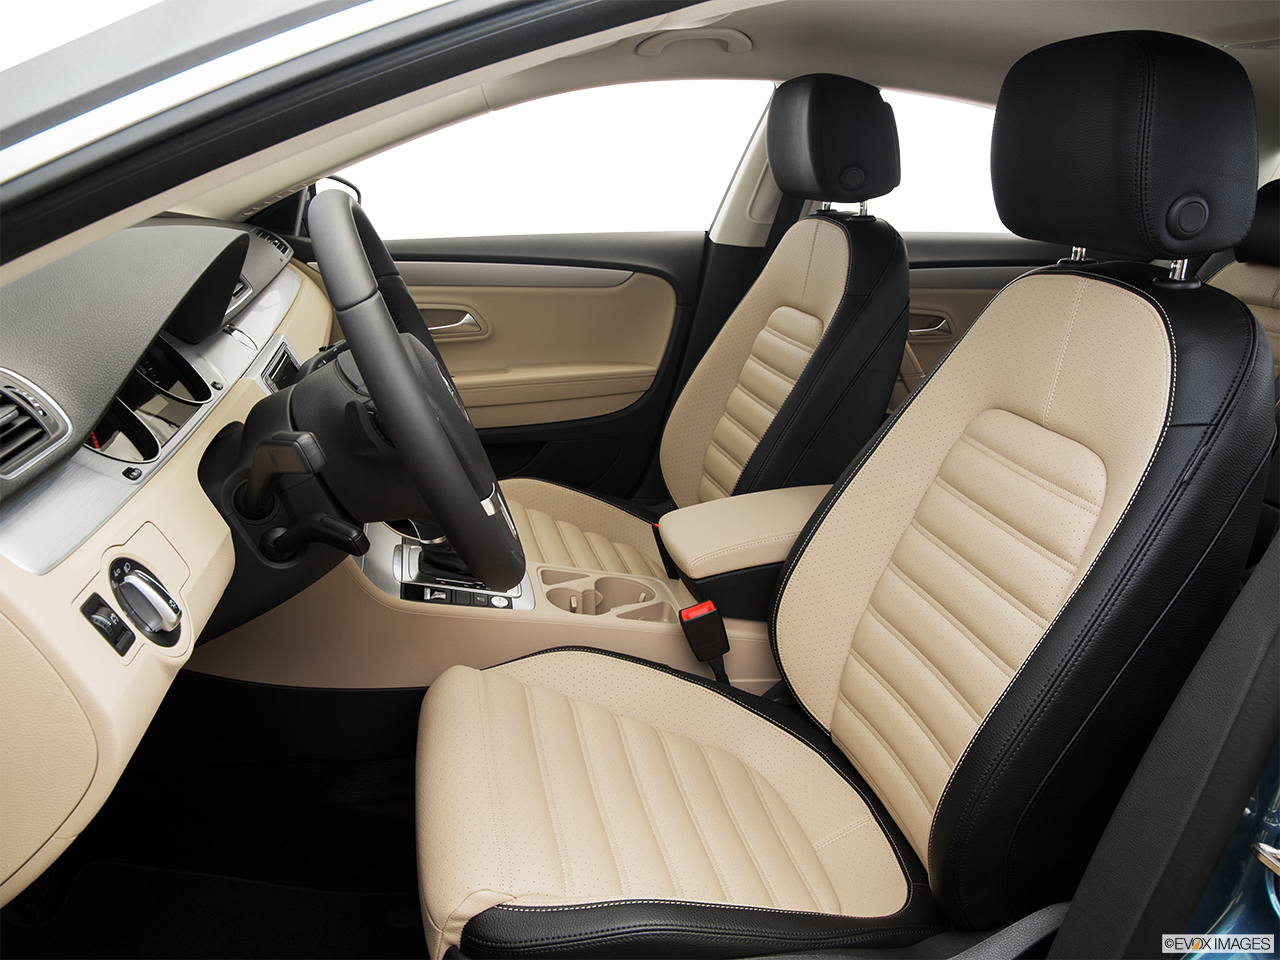 Research The 2016 Volkswagen CC in San Diego